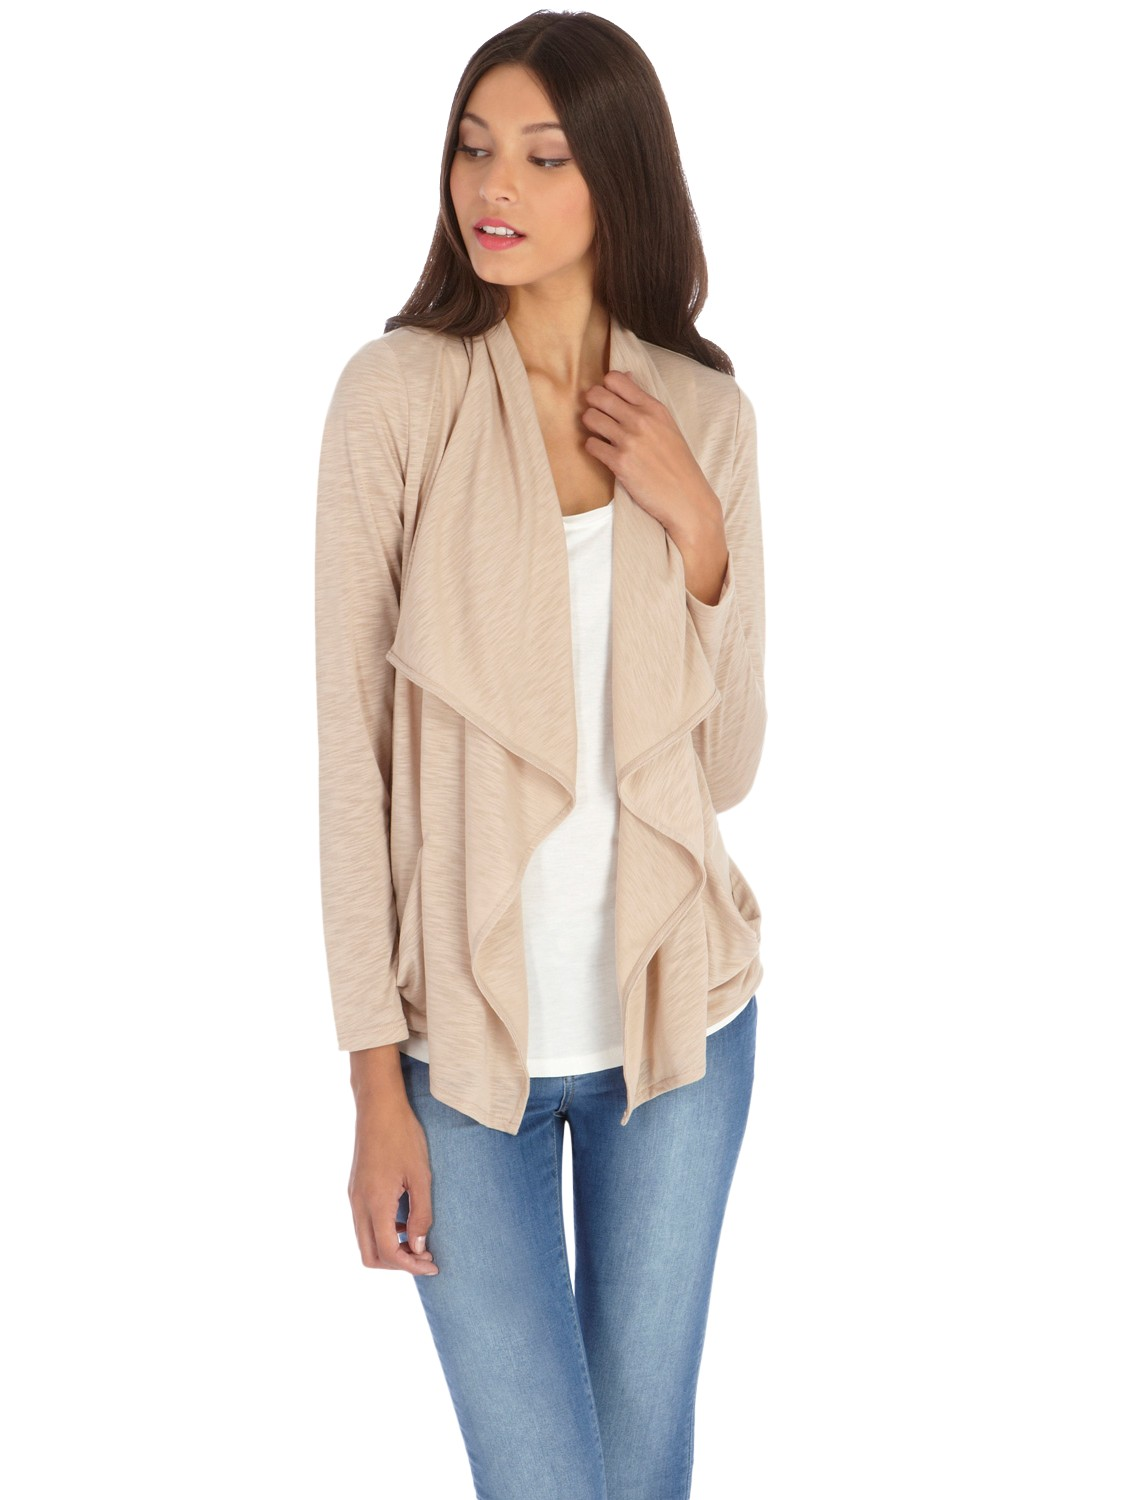 Oasis Waterfall Cardigan in Natural | Lyst